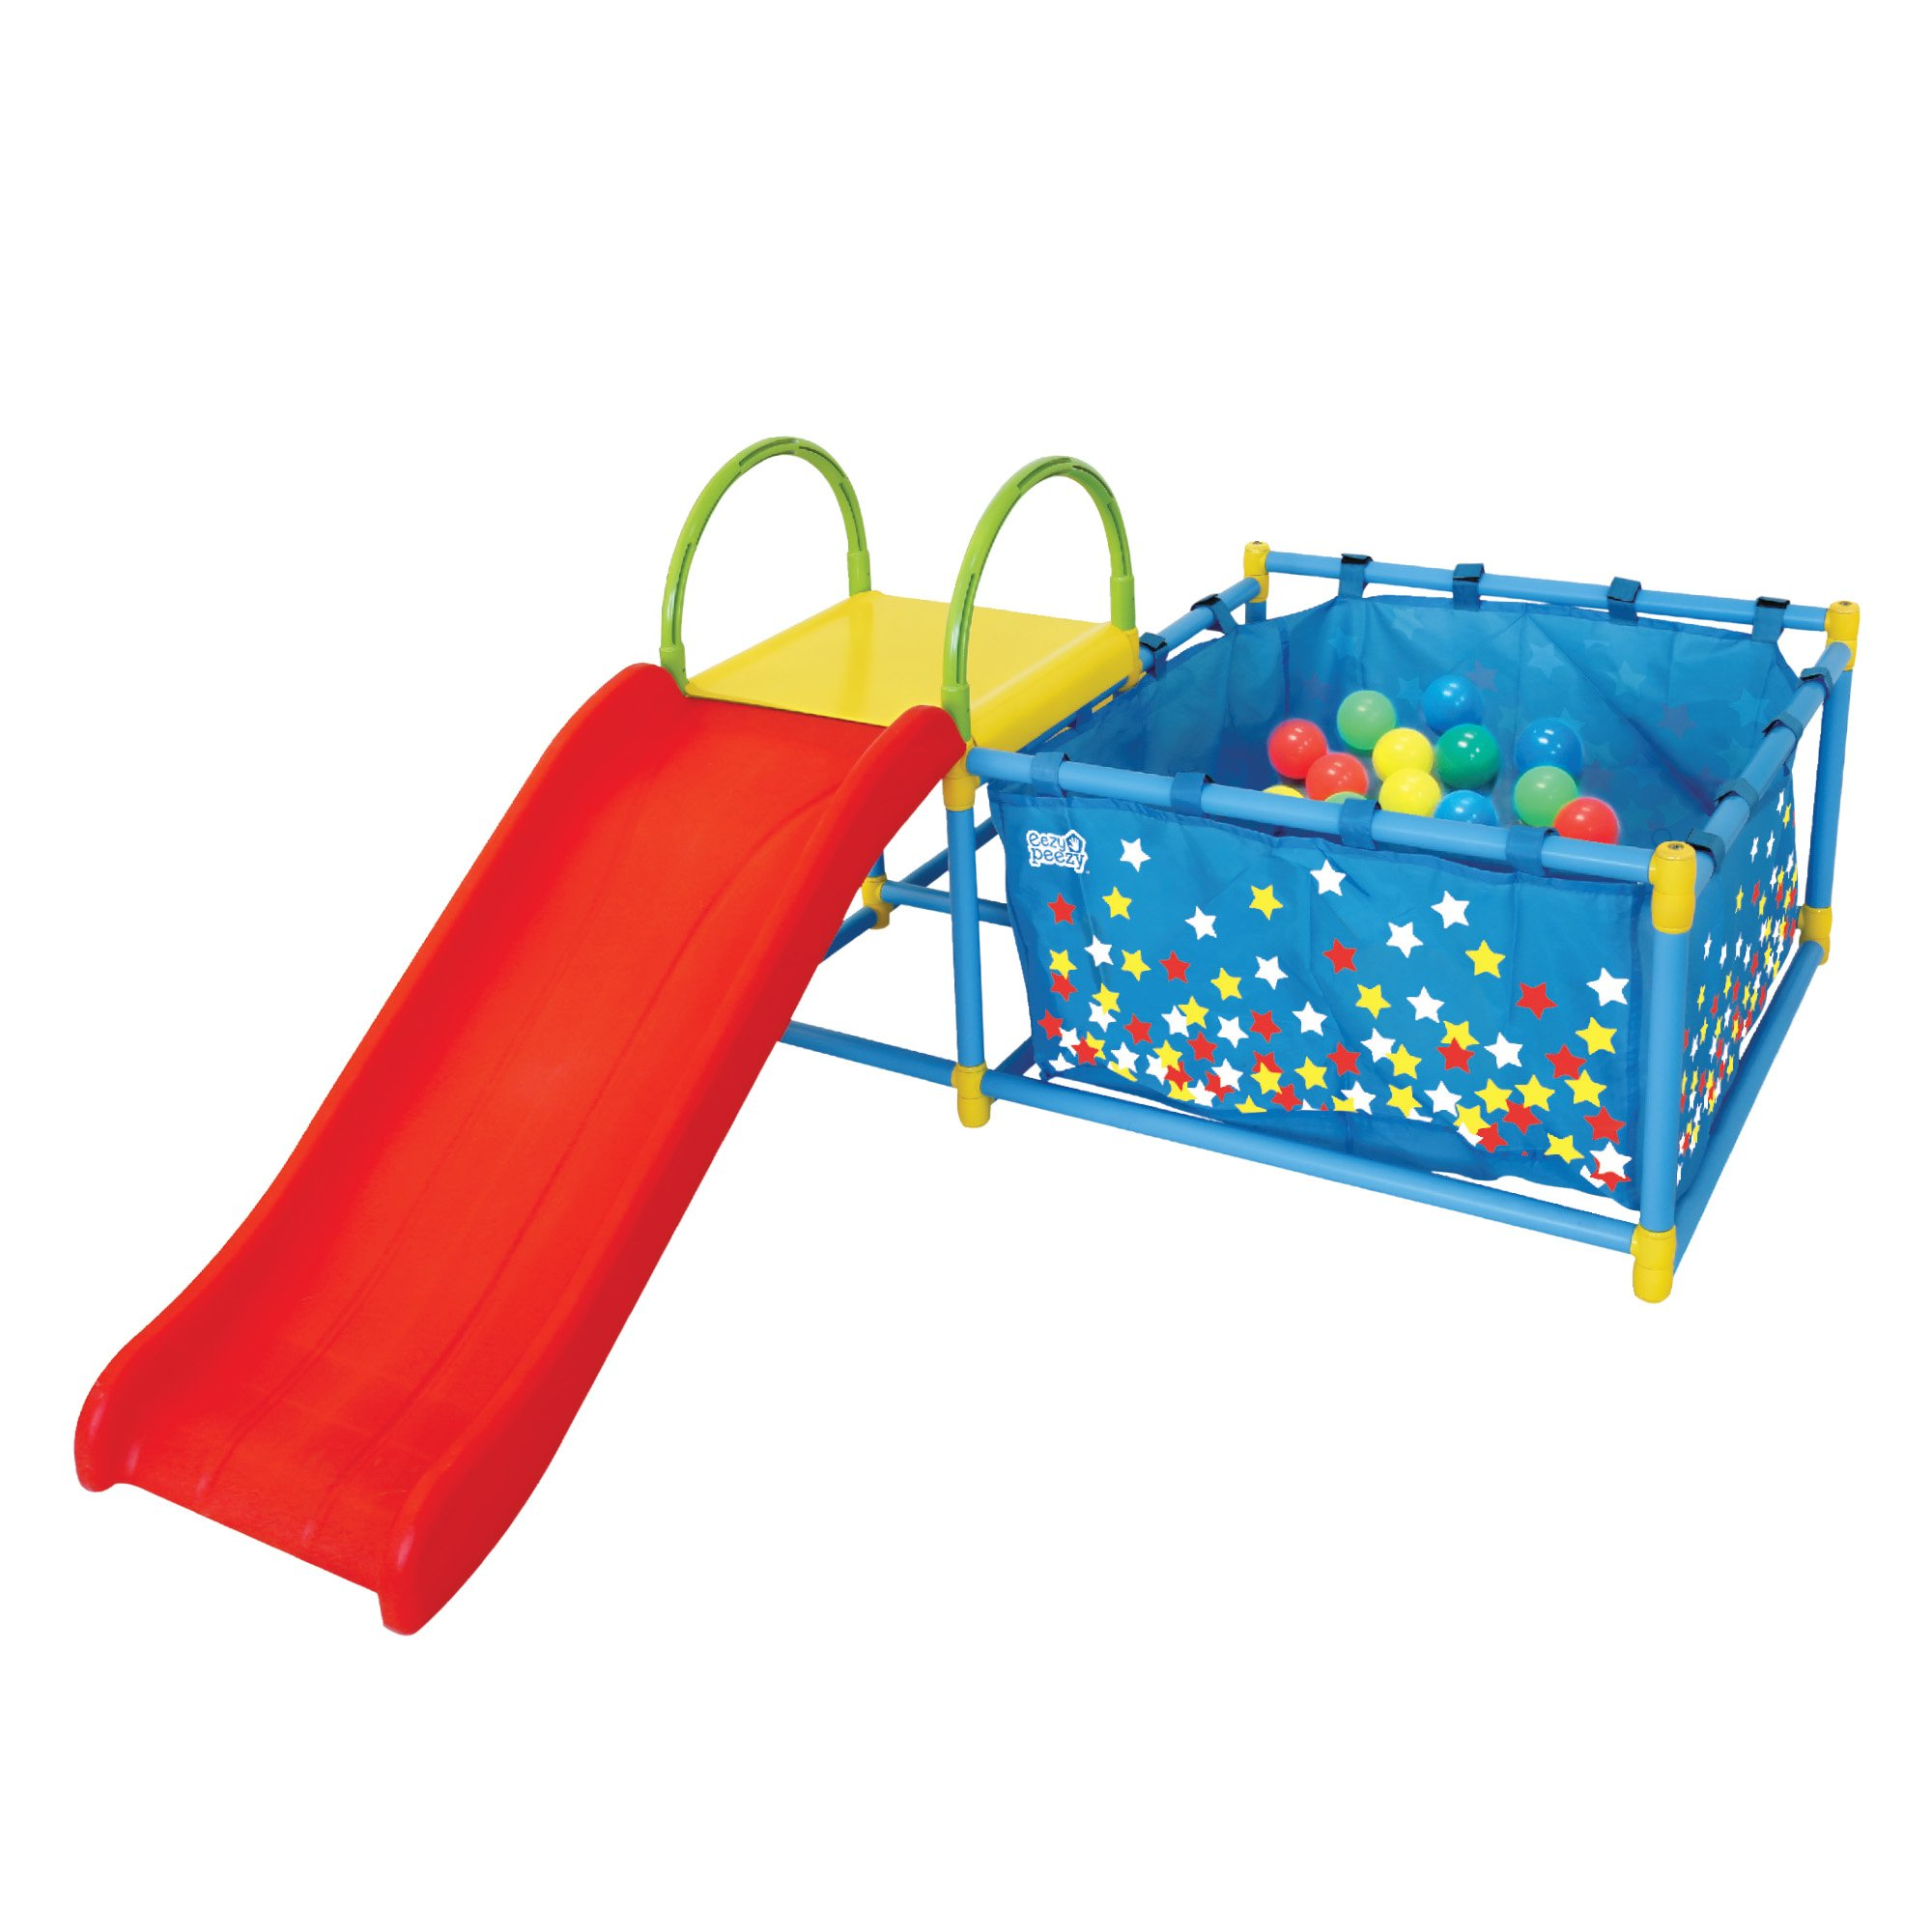 Eezy Peezy Active Play 3 in 1 Jungle Gym Foldable PlaySet - Includes Slide, Ball Pit, & Toss Target with 50 Colorful Balls